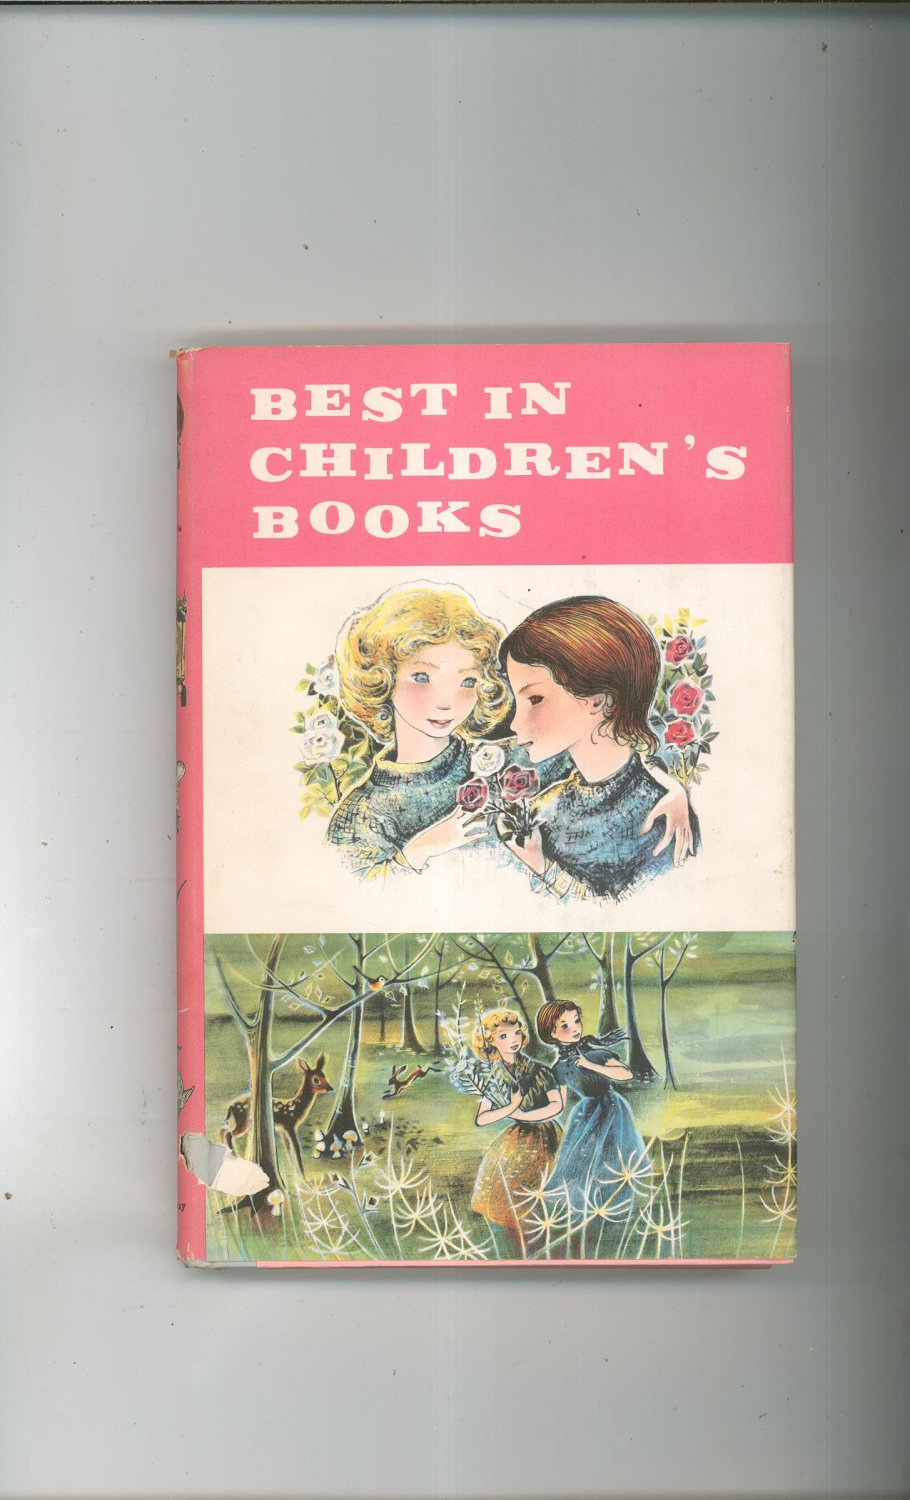 Best Children S Book Covers : Best in children s books volume vintage hard cover with